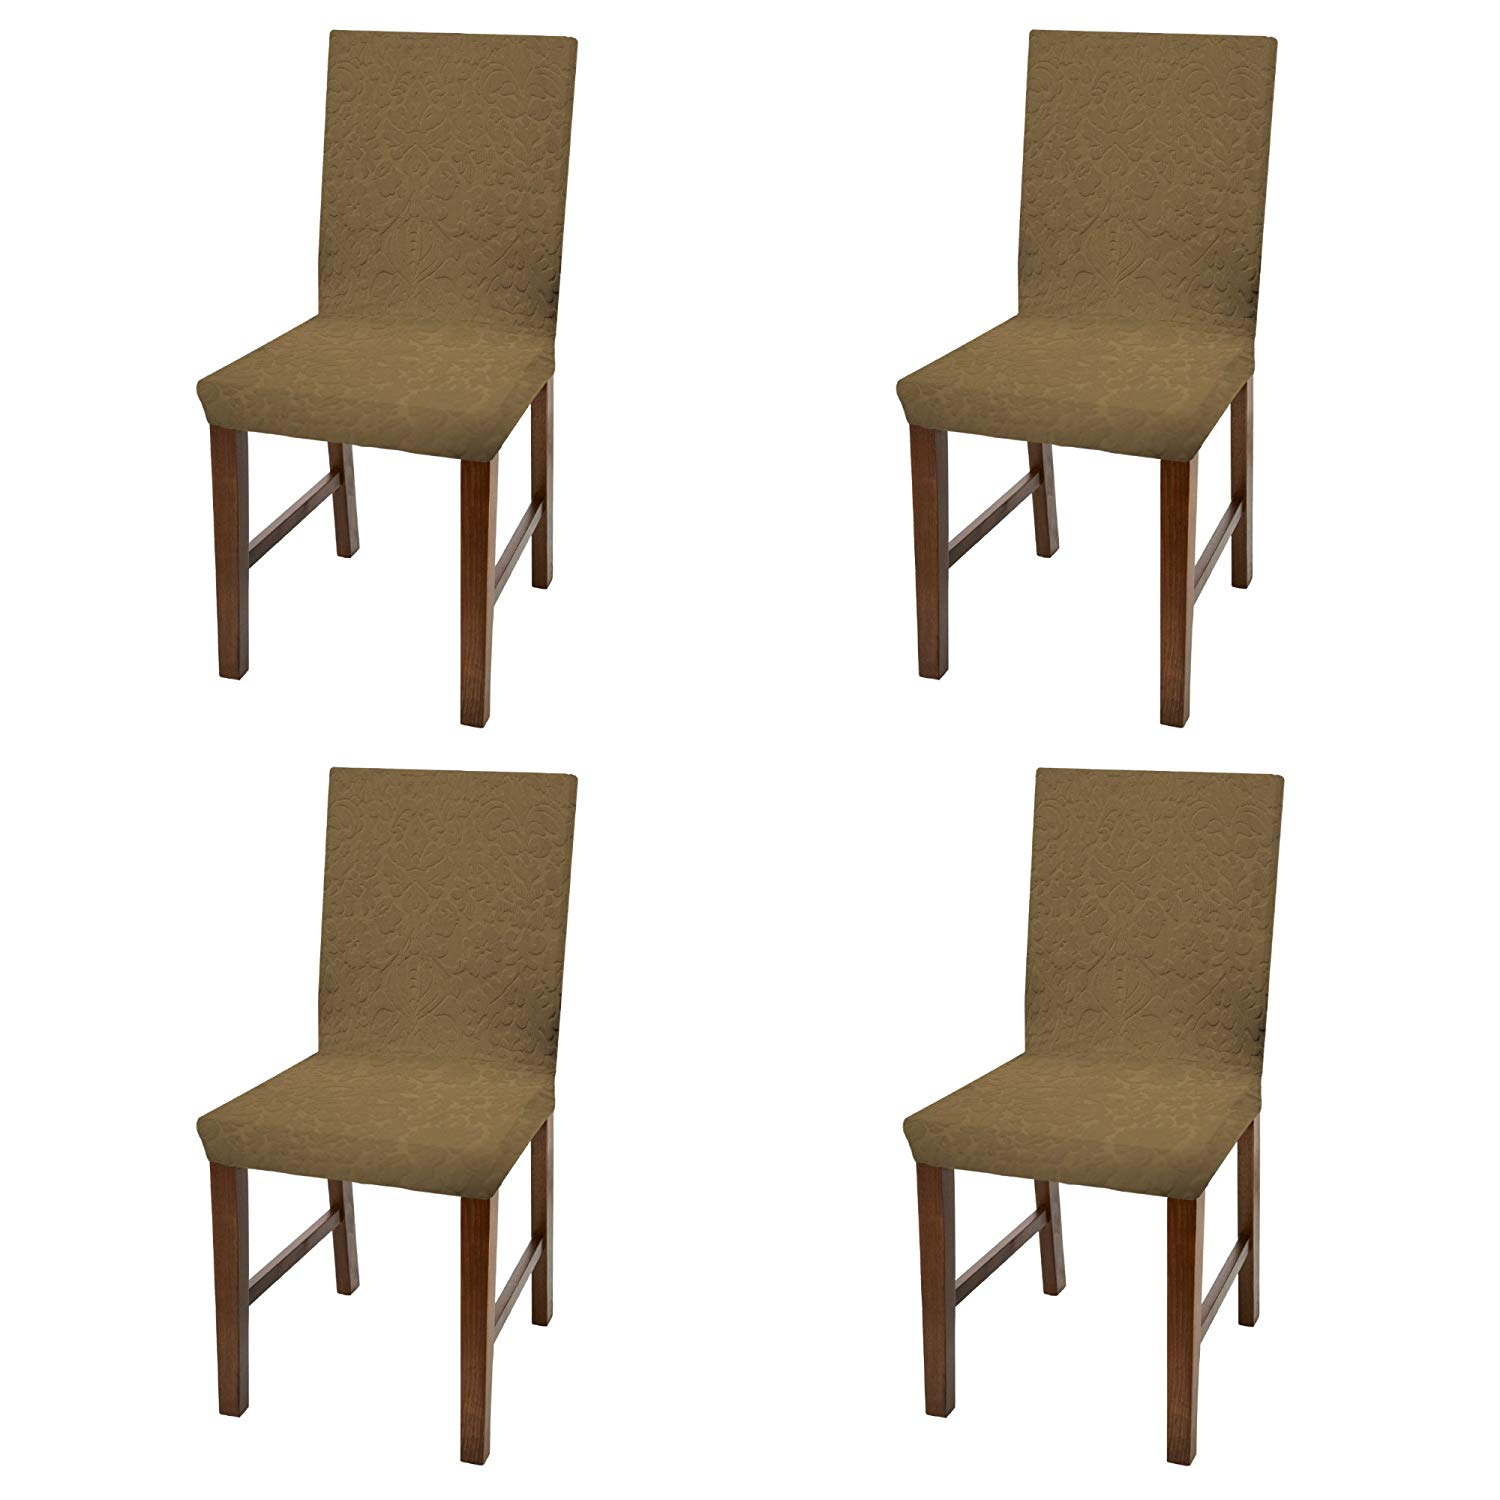 dining chair covers in store rocking babies r us linen luxurious damask cover form fitting soft parson slipcover camel set of 4 walmart com